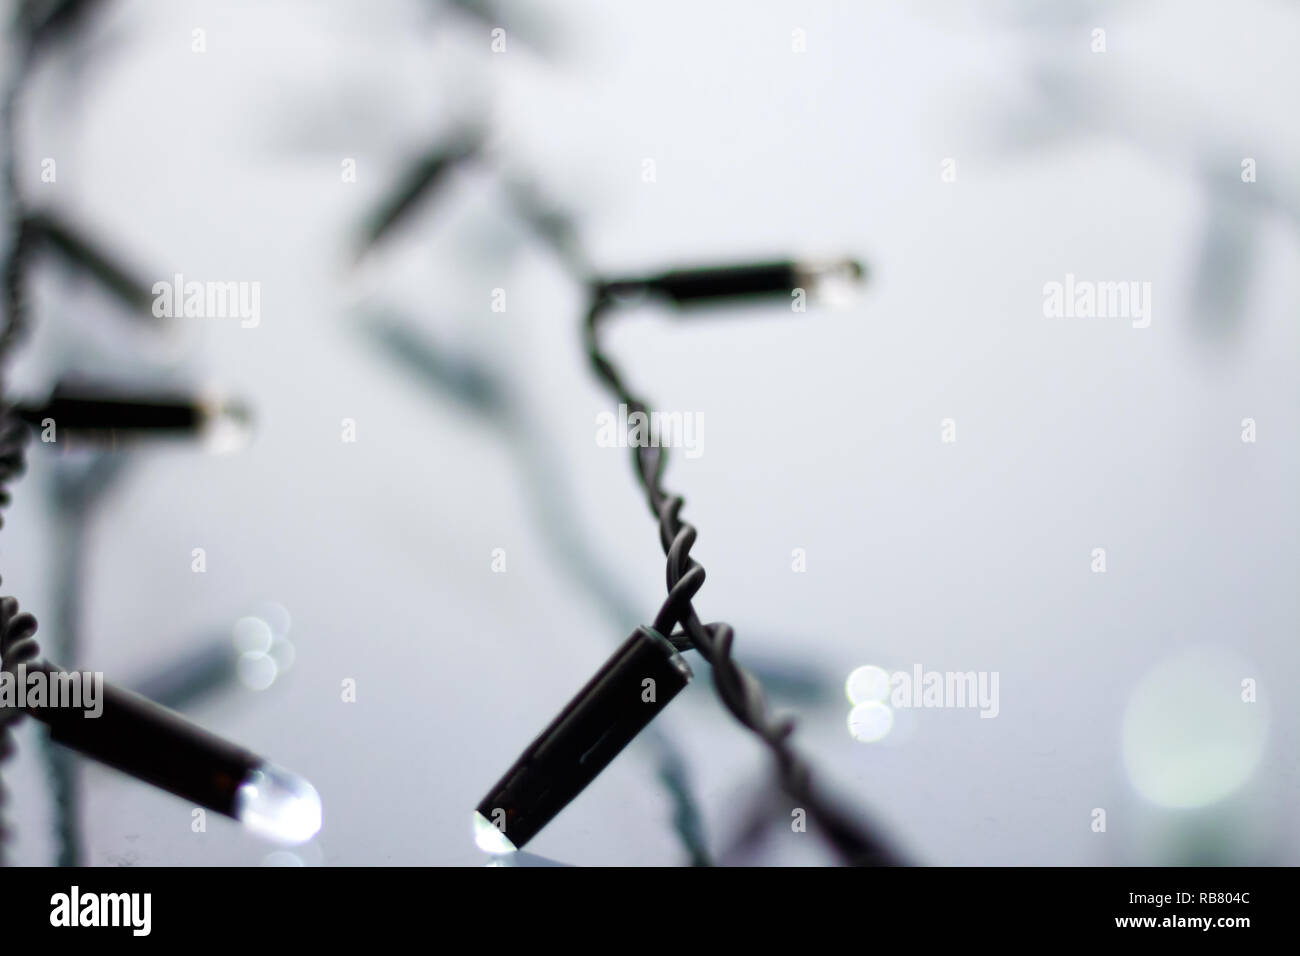 Christmas lights blurred background Stock Photo